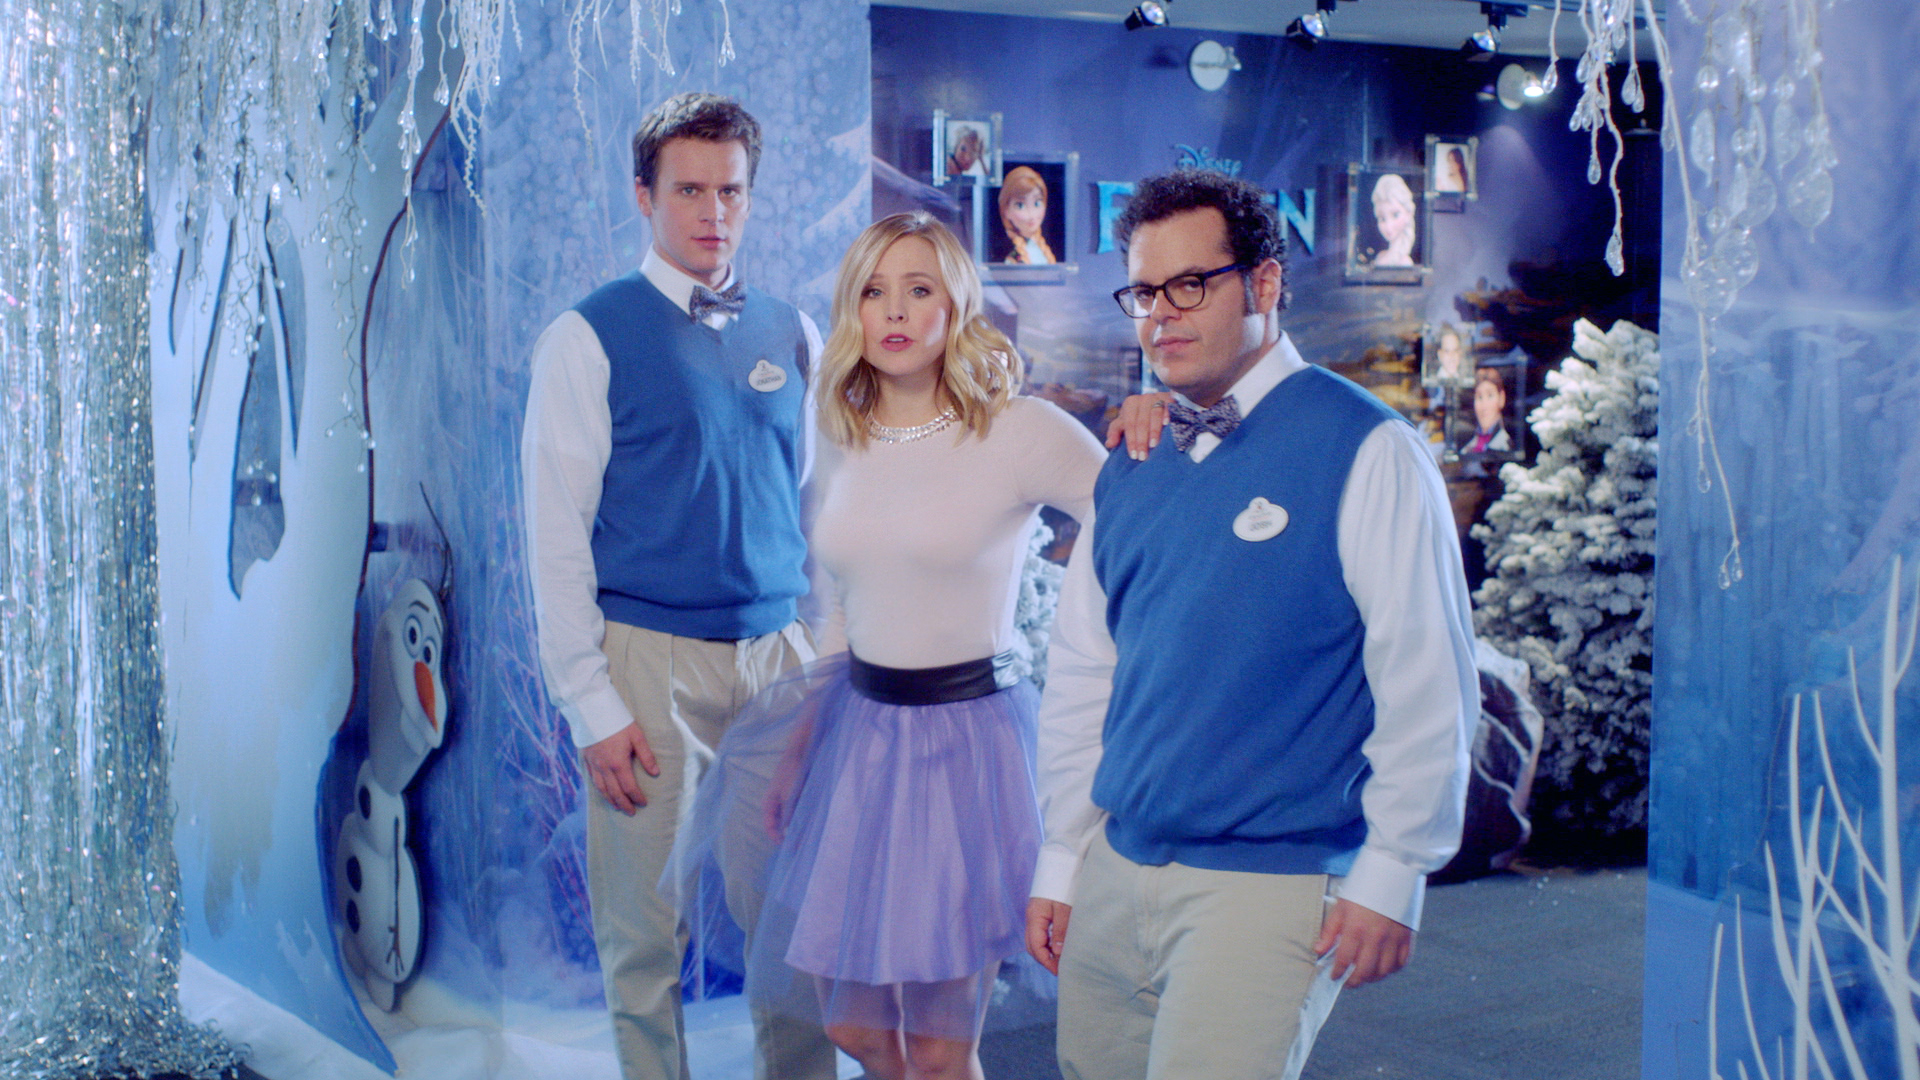 Behind the Scenes of Frozen with Josh Gad & Jonathon GroffKristen Bell And Jonathan Groff